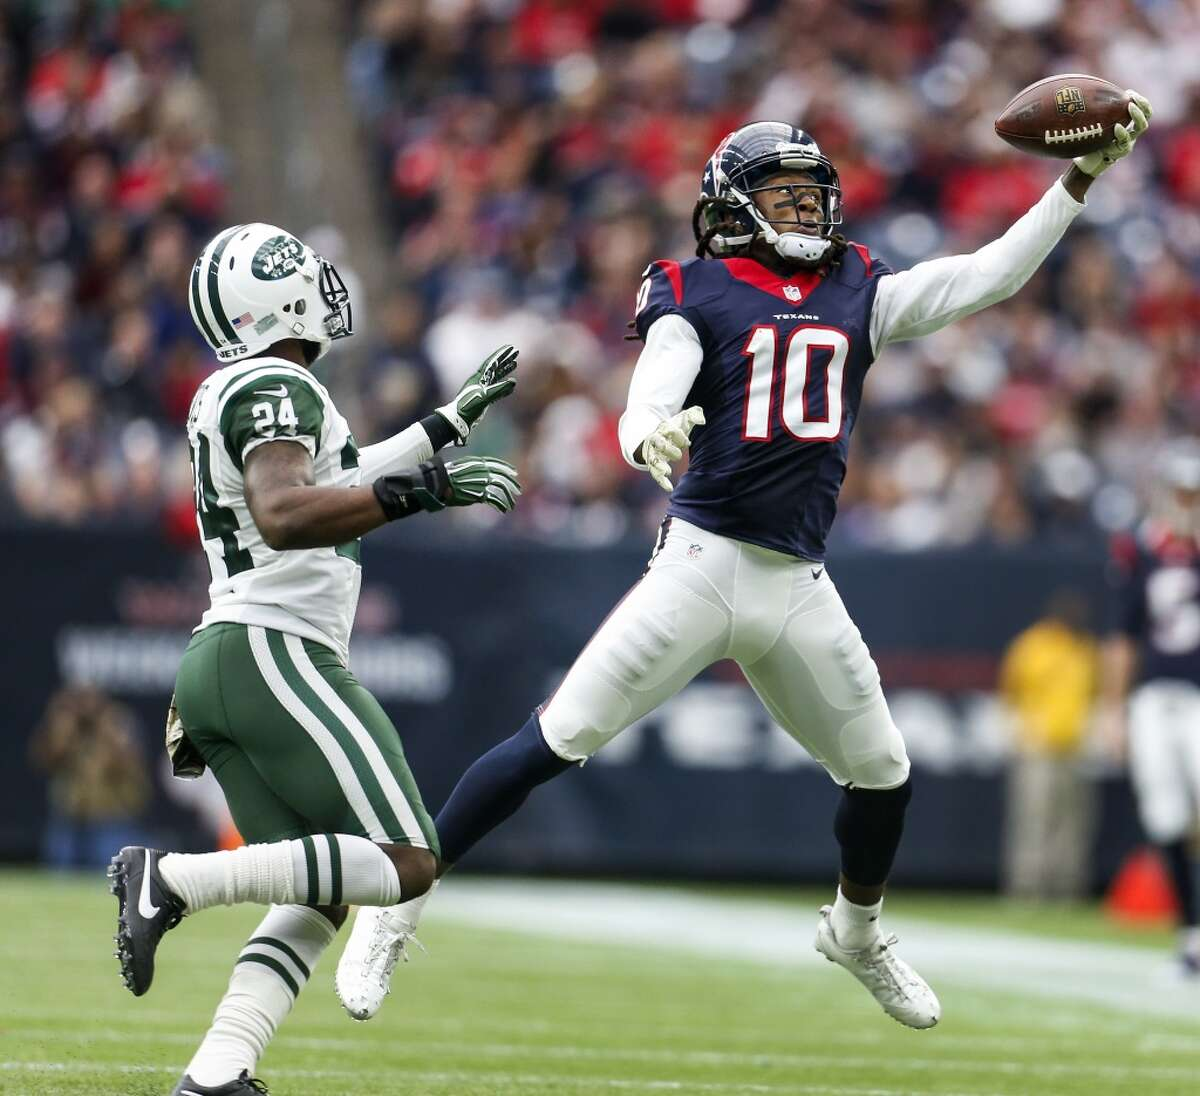 DeAndre Hopkins He's emerged as one of the NFL's best young receivers, making ridiculous catches on a weekly basis. Imagine if he were actually paired with a quarterback who wasn't a journeyman discard from another team.